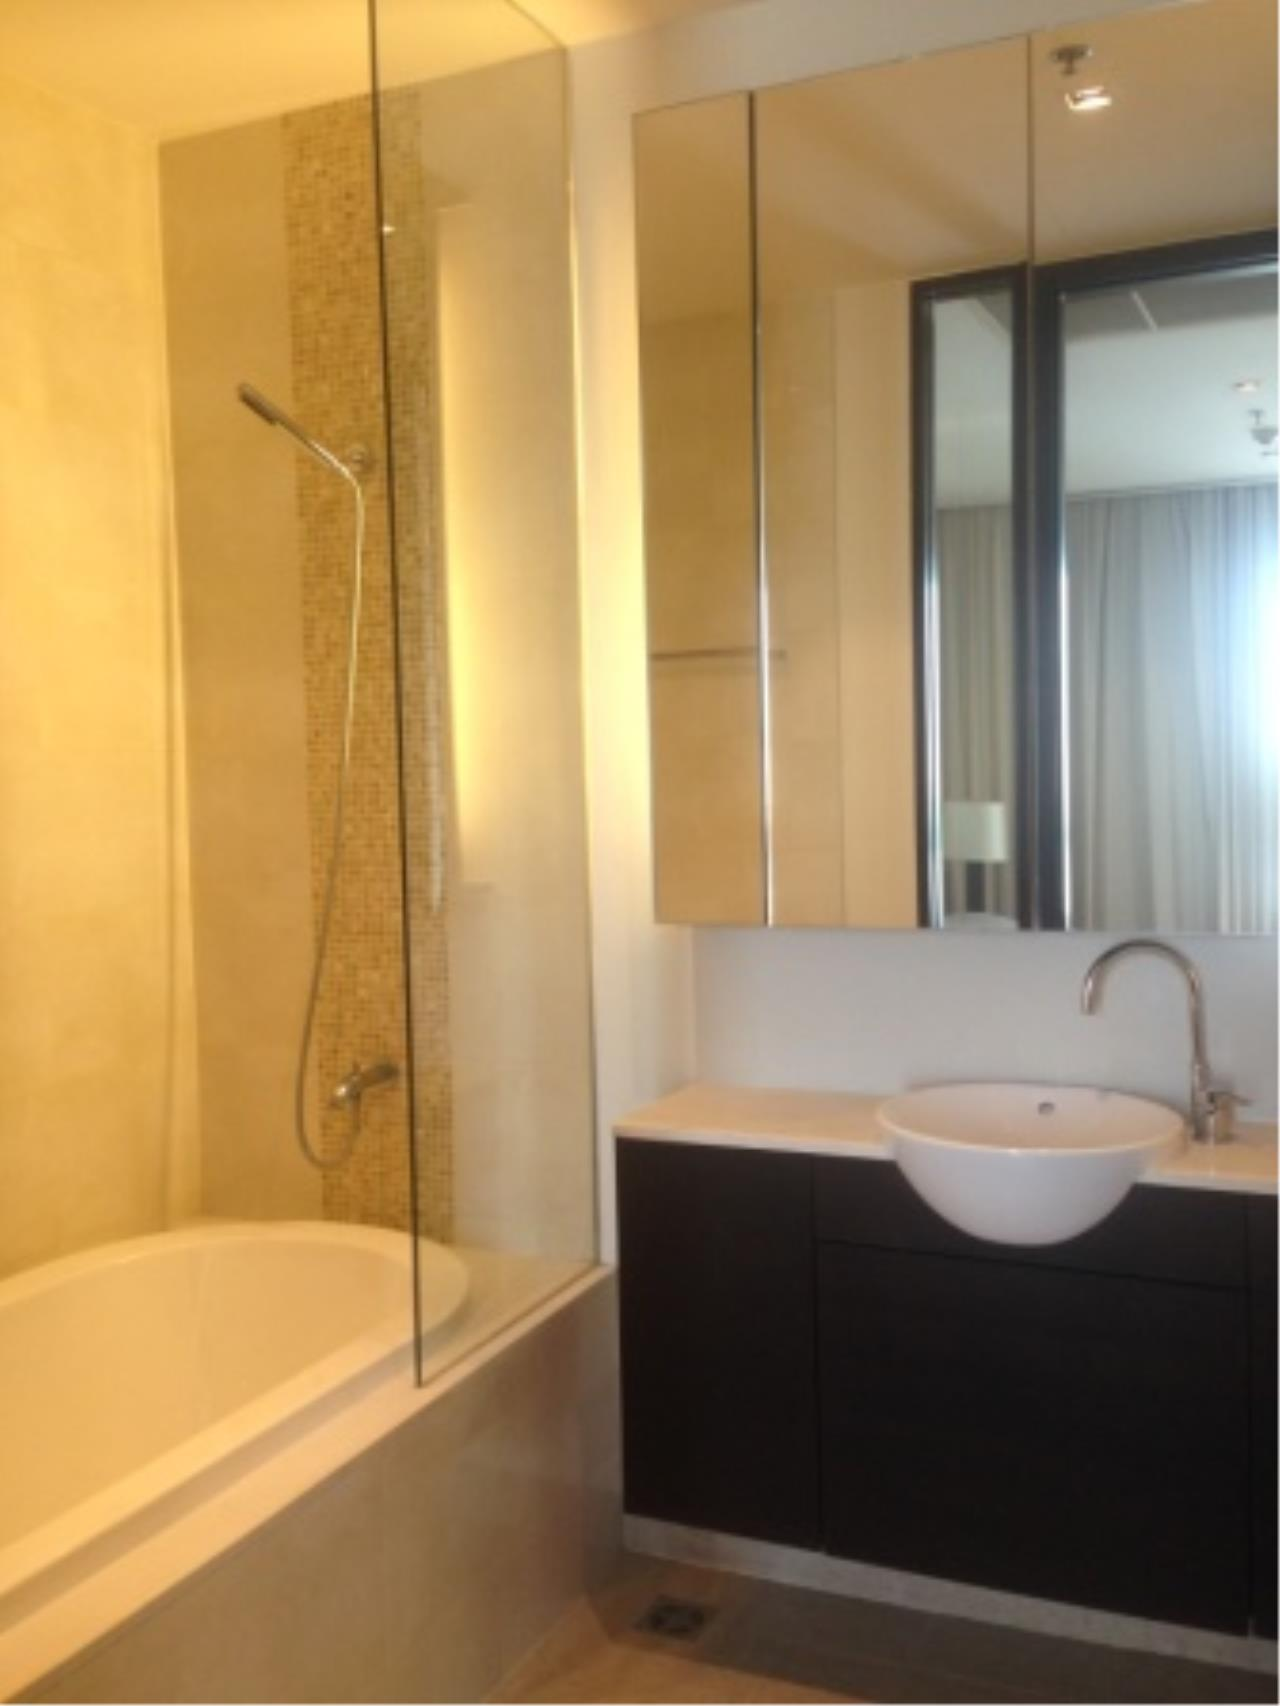 BKK Condos Agency's 2 bedroom condo for sale at The Lofts Yennakart 7